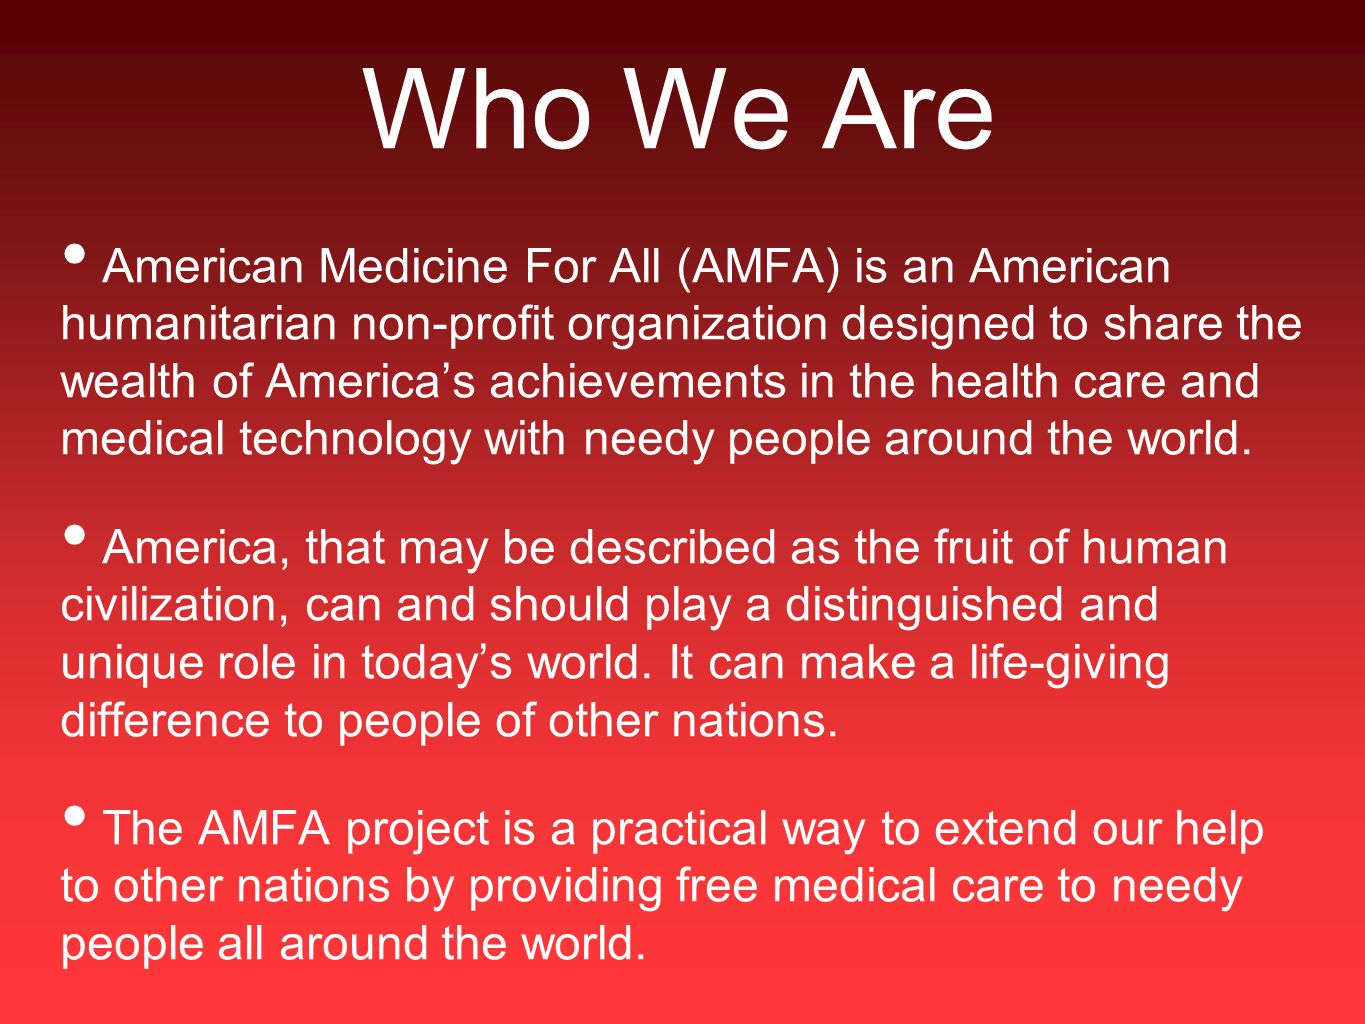 Who We Are American Medicine For All (AMFA) is an American humanitarian non-profit organization designed to share the wealth of America's achievements in the health care and medical technology with needy people around the world.